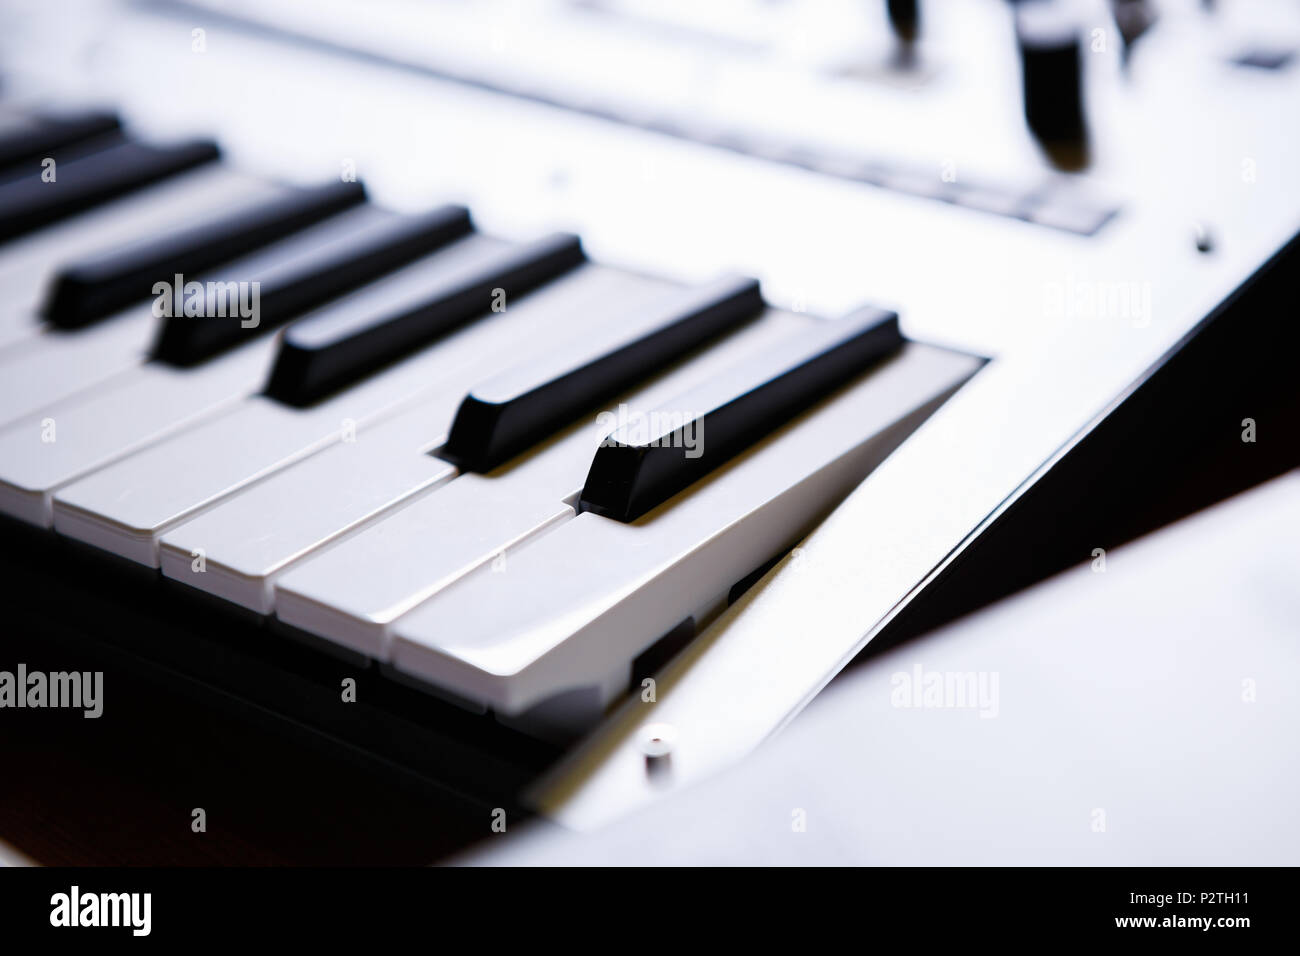 Synthesizer key board in close up.Audio equipment for music production.Sound recording studio device for musician & composer.Professional electronic m - Stock Image